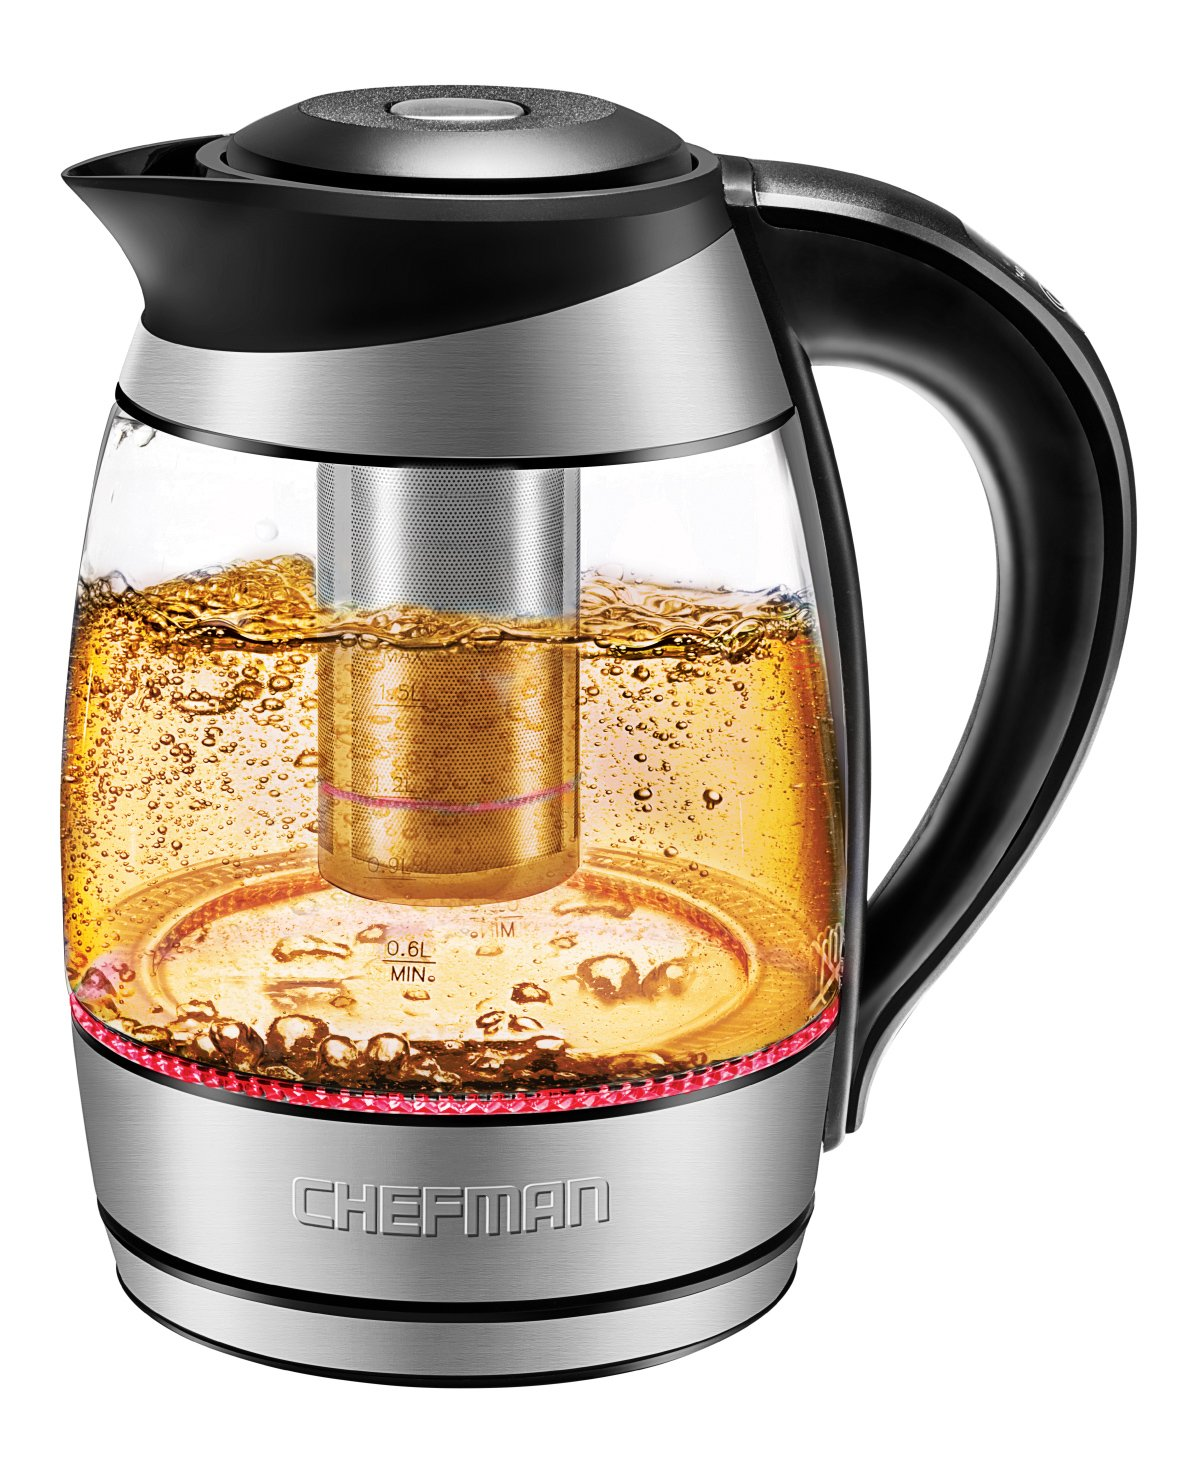 Chefman Electric Glass Kettle w/Temperature Control and Indicator, 5 Presets, Colored LED Lights, 360° Swivel Base, BPA, Free Removable Tea Infuser, 1500W and 120V, 1.8 Liters, Stainless Steel